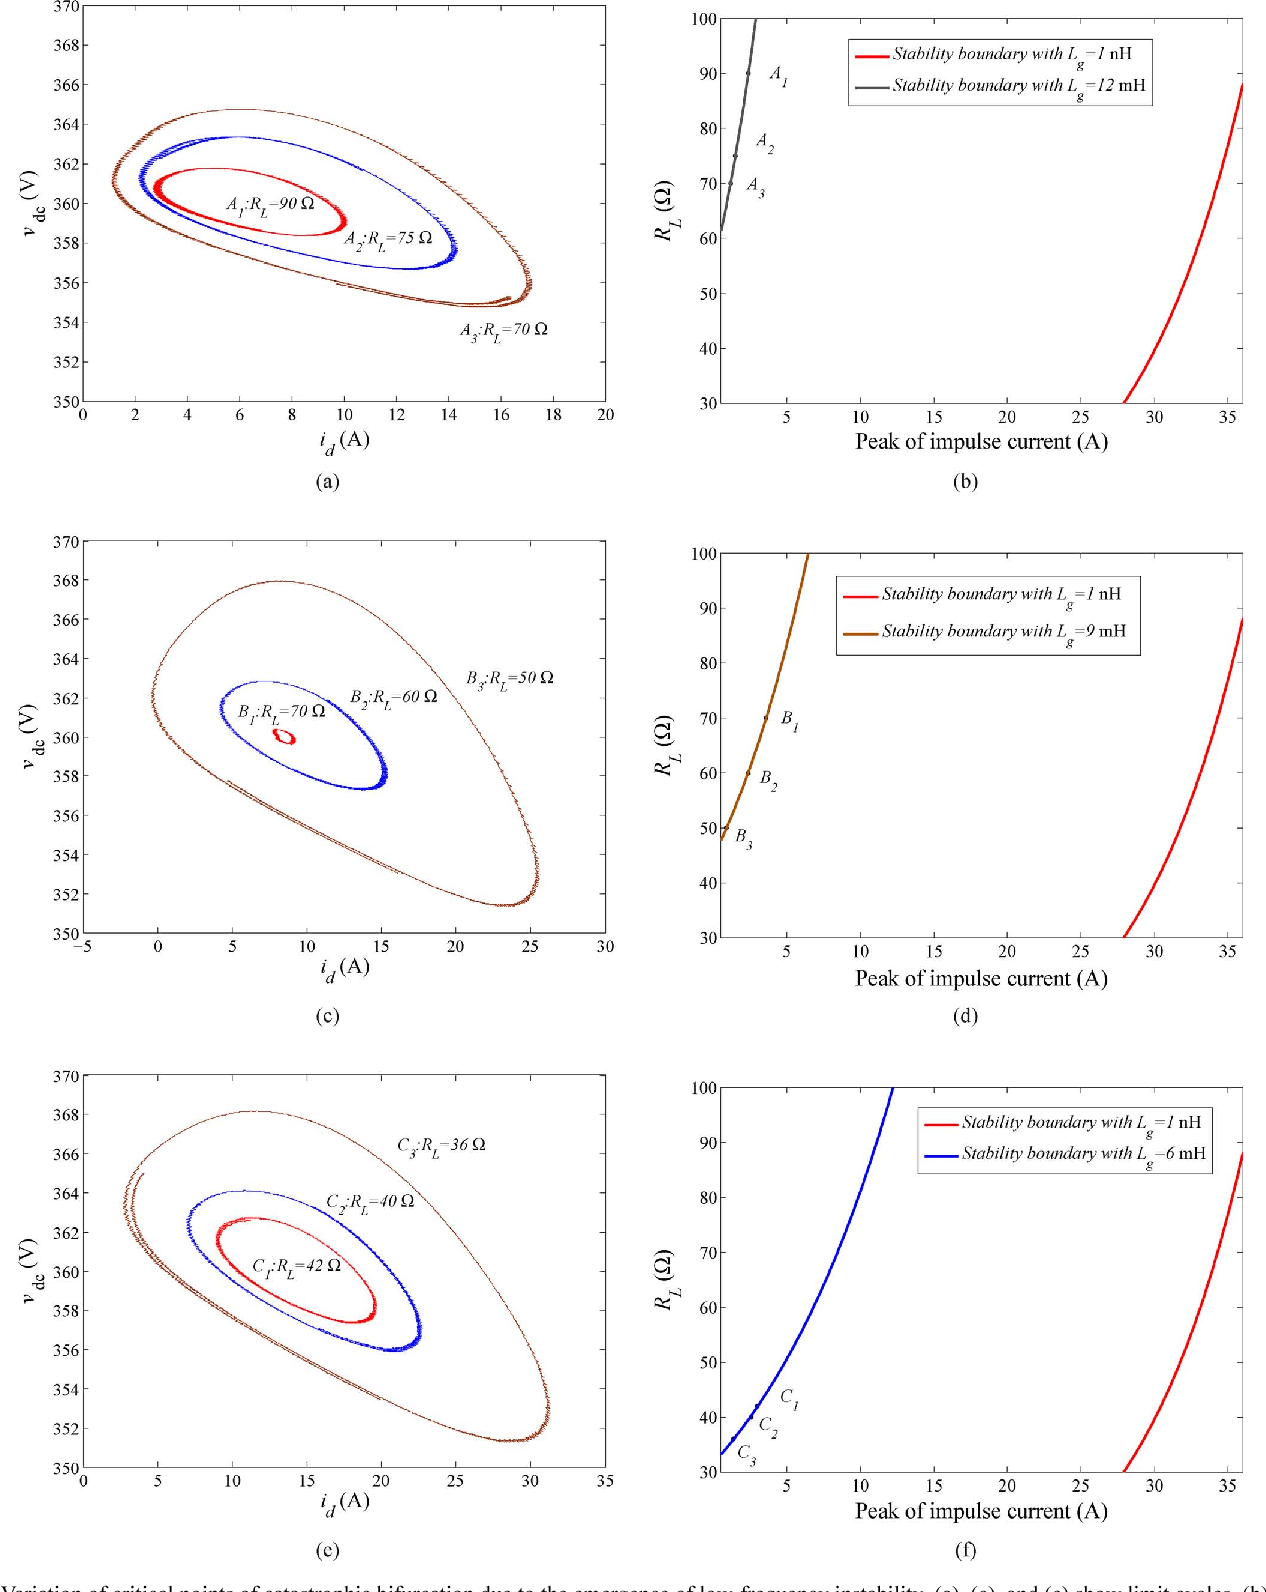 low frequency hopf bifurcation and its effects on stability margin Three-Phase Power Junction Box low frequency hopf bifurcation and its effects on stability margin in three phase pfc power supplies connected to non ideal power grid